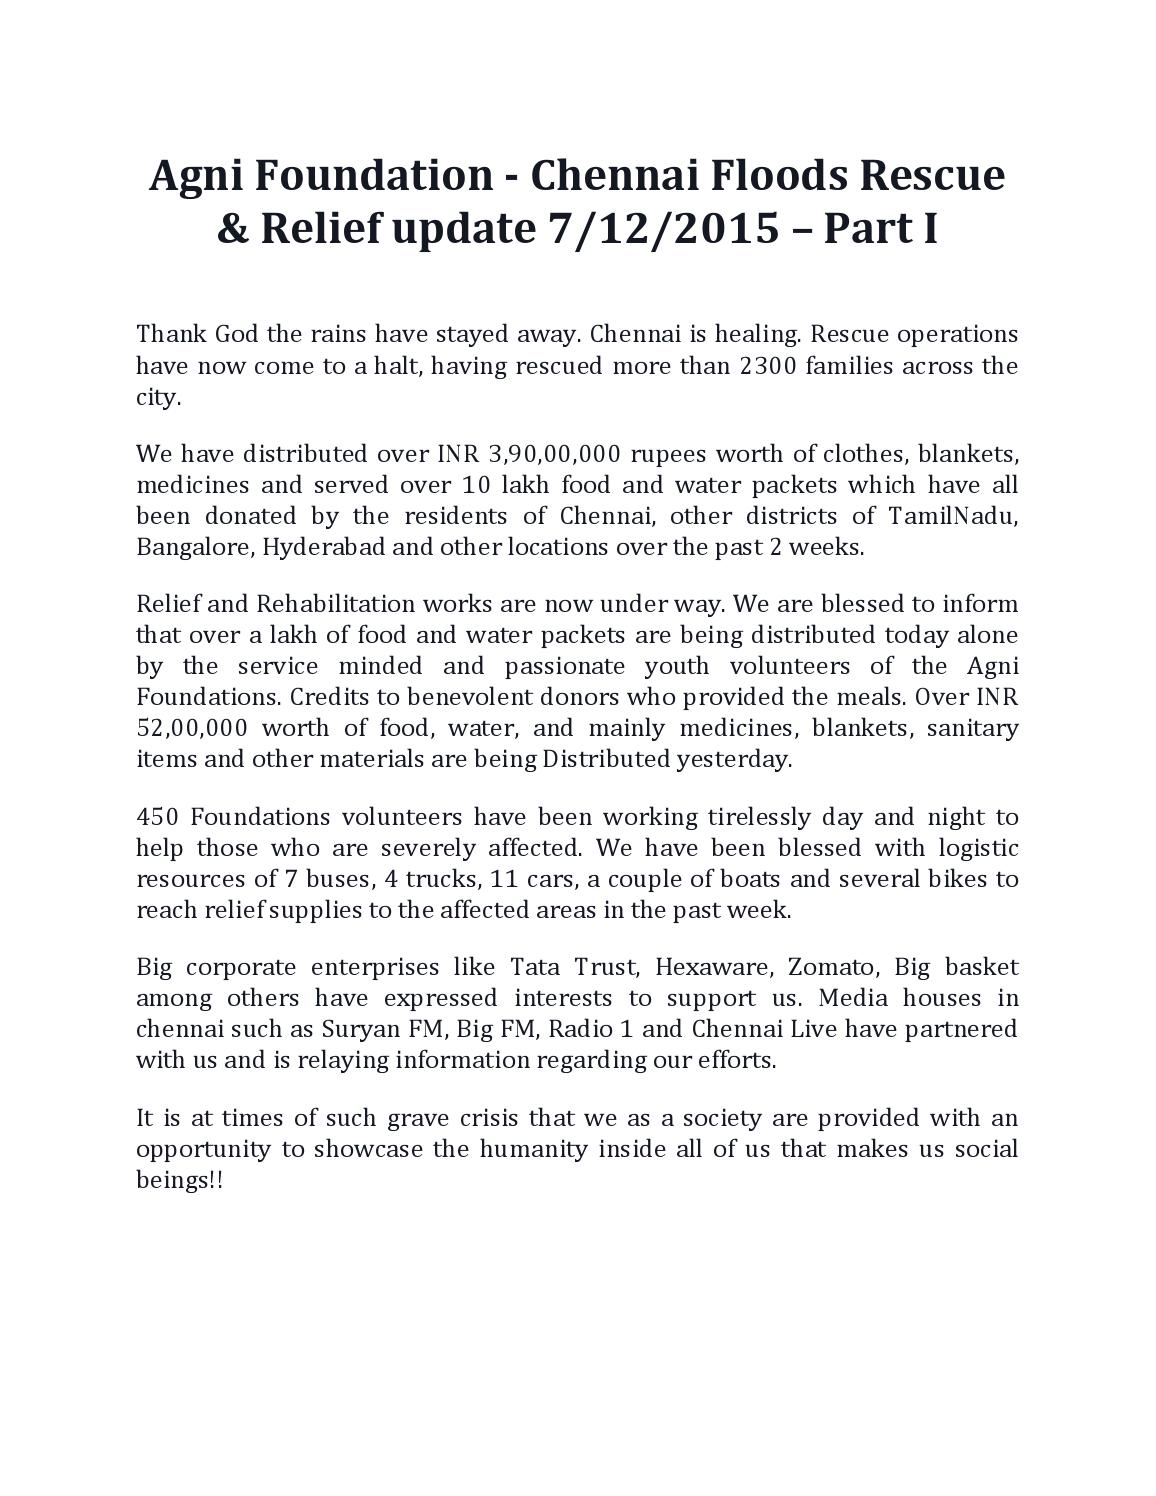 Agni foundation chennai floods rescue & relief update dec'7